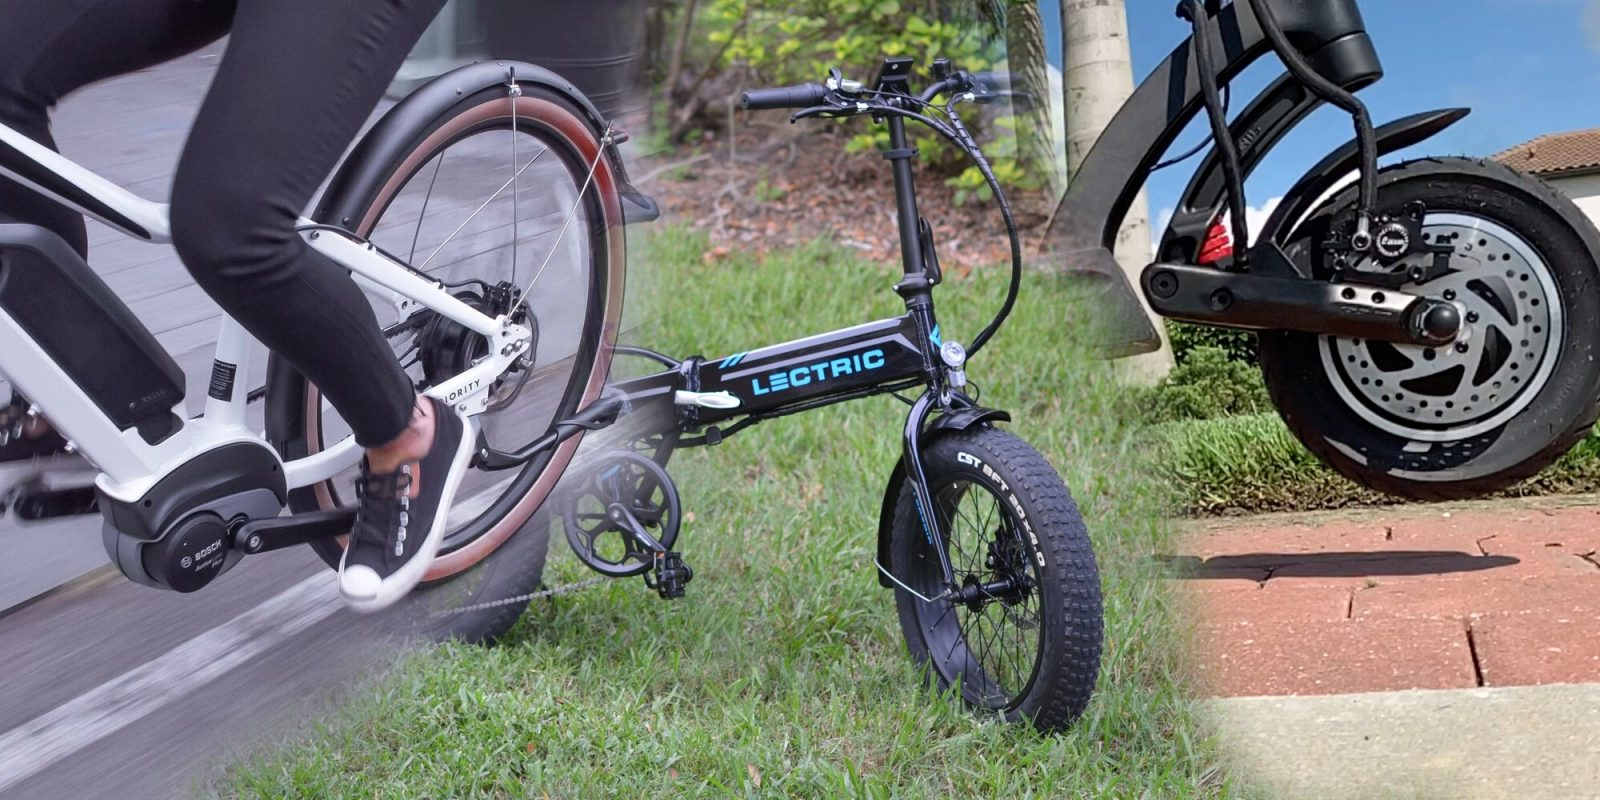 Gift guide 2019: The best electric bikes, e-scooters, and e-skateboards this year